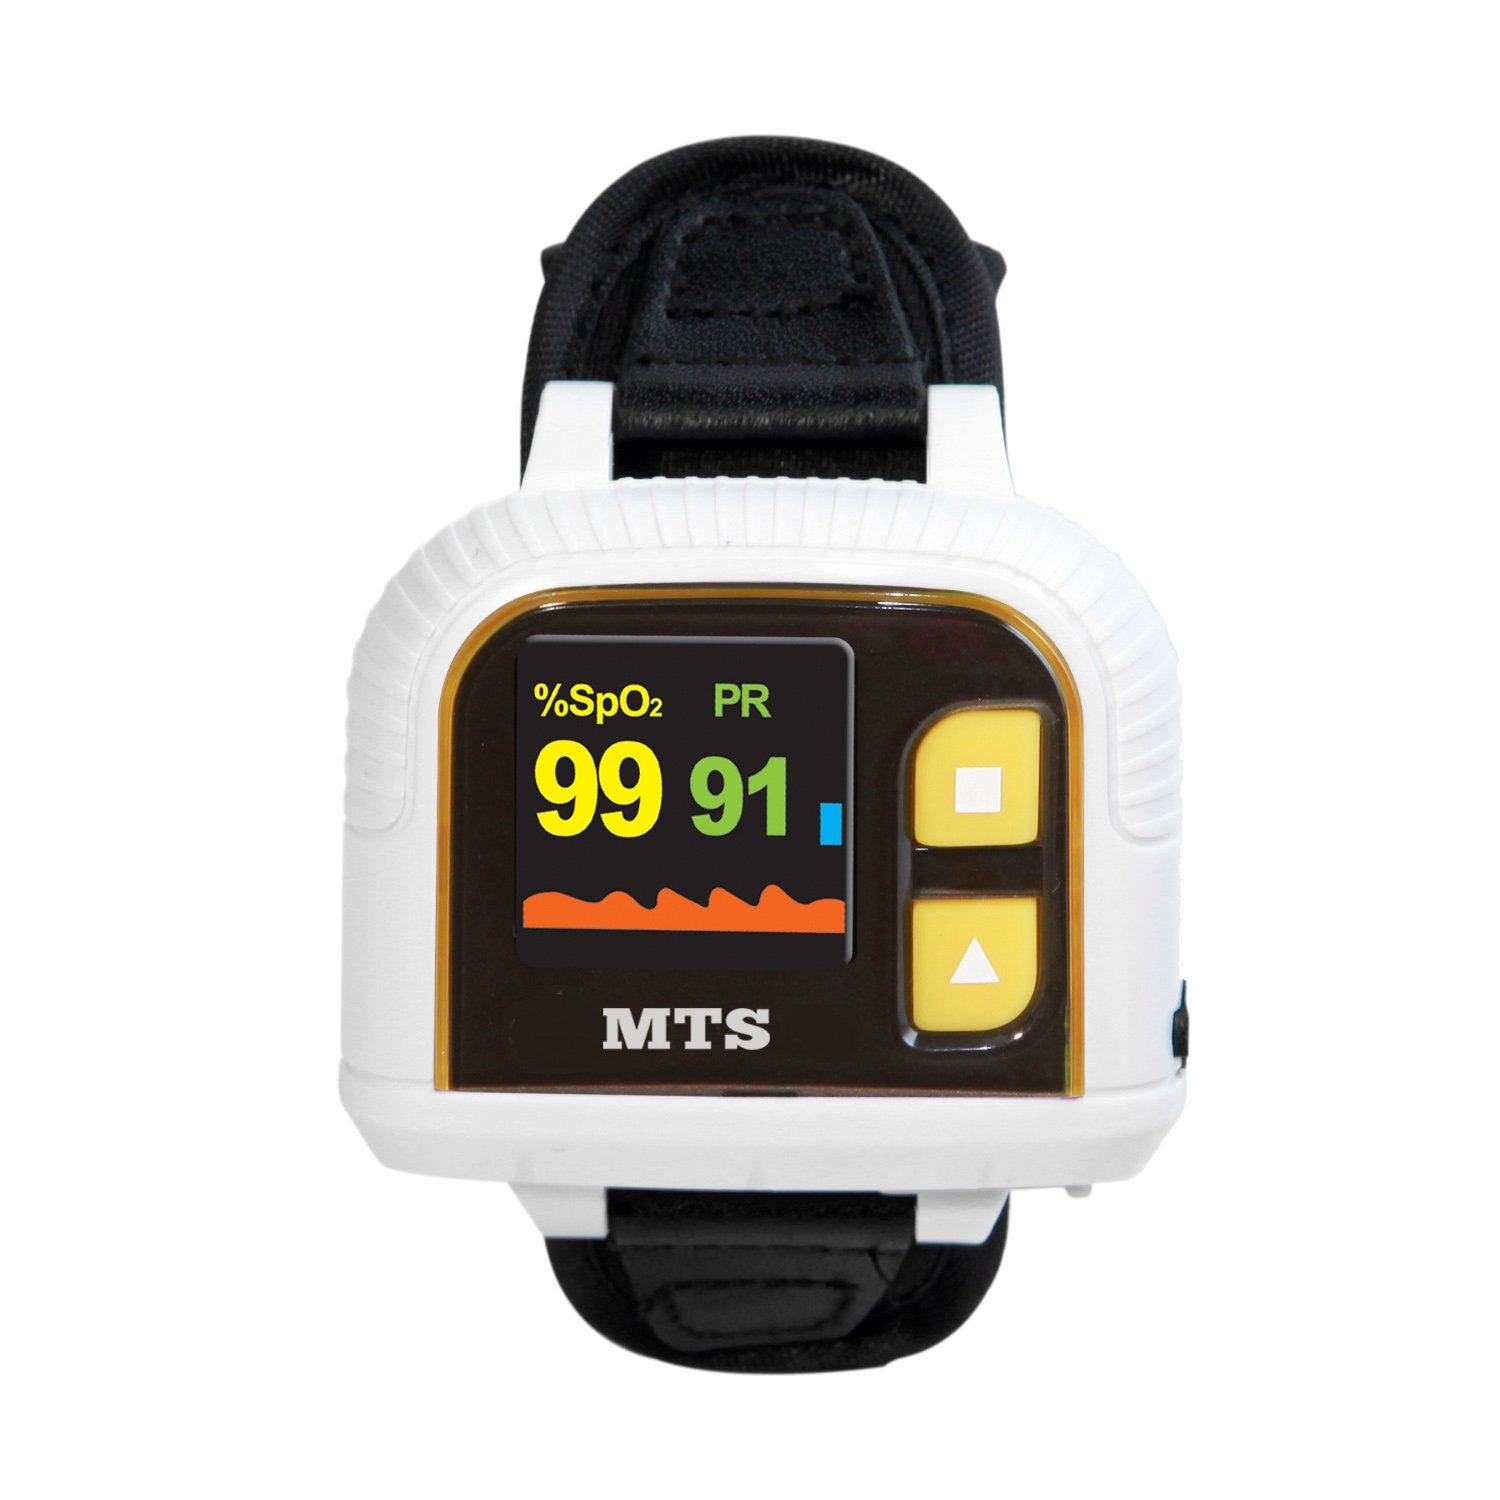 Wrist Pulse Oximeter MTS OX-610A with Memory, Fully Automatic, Motion Tolerant, Programmable Alarms, Software Included